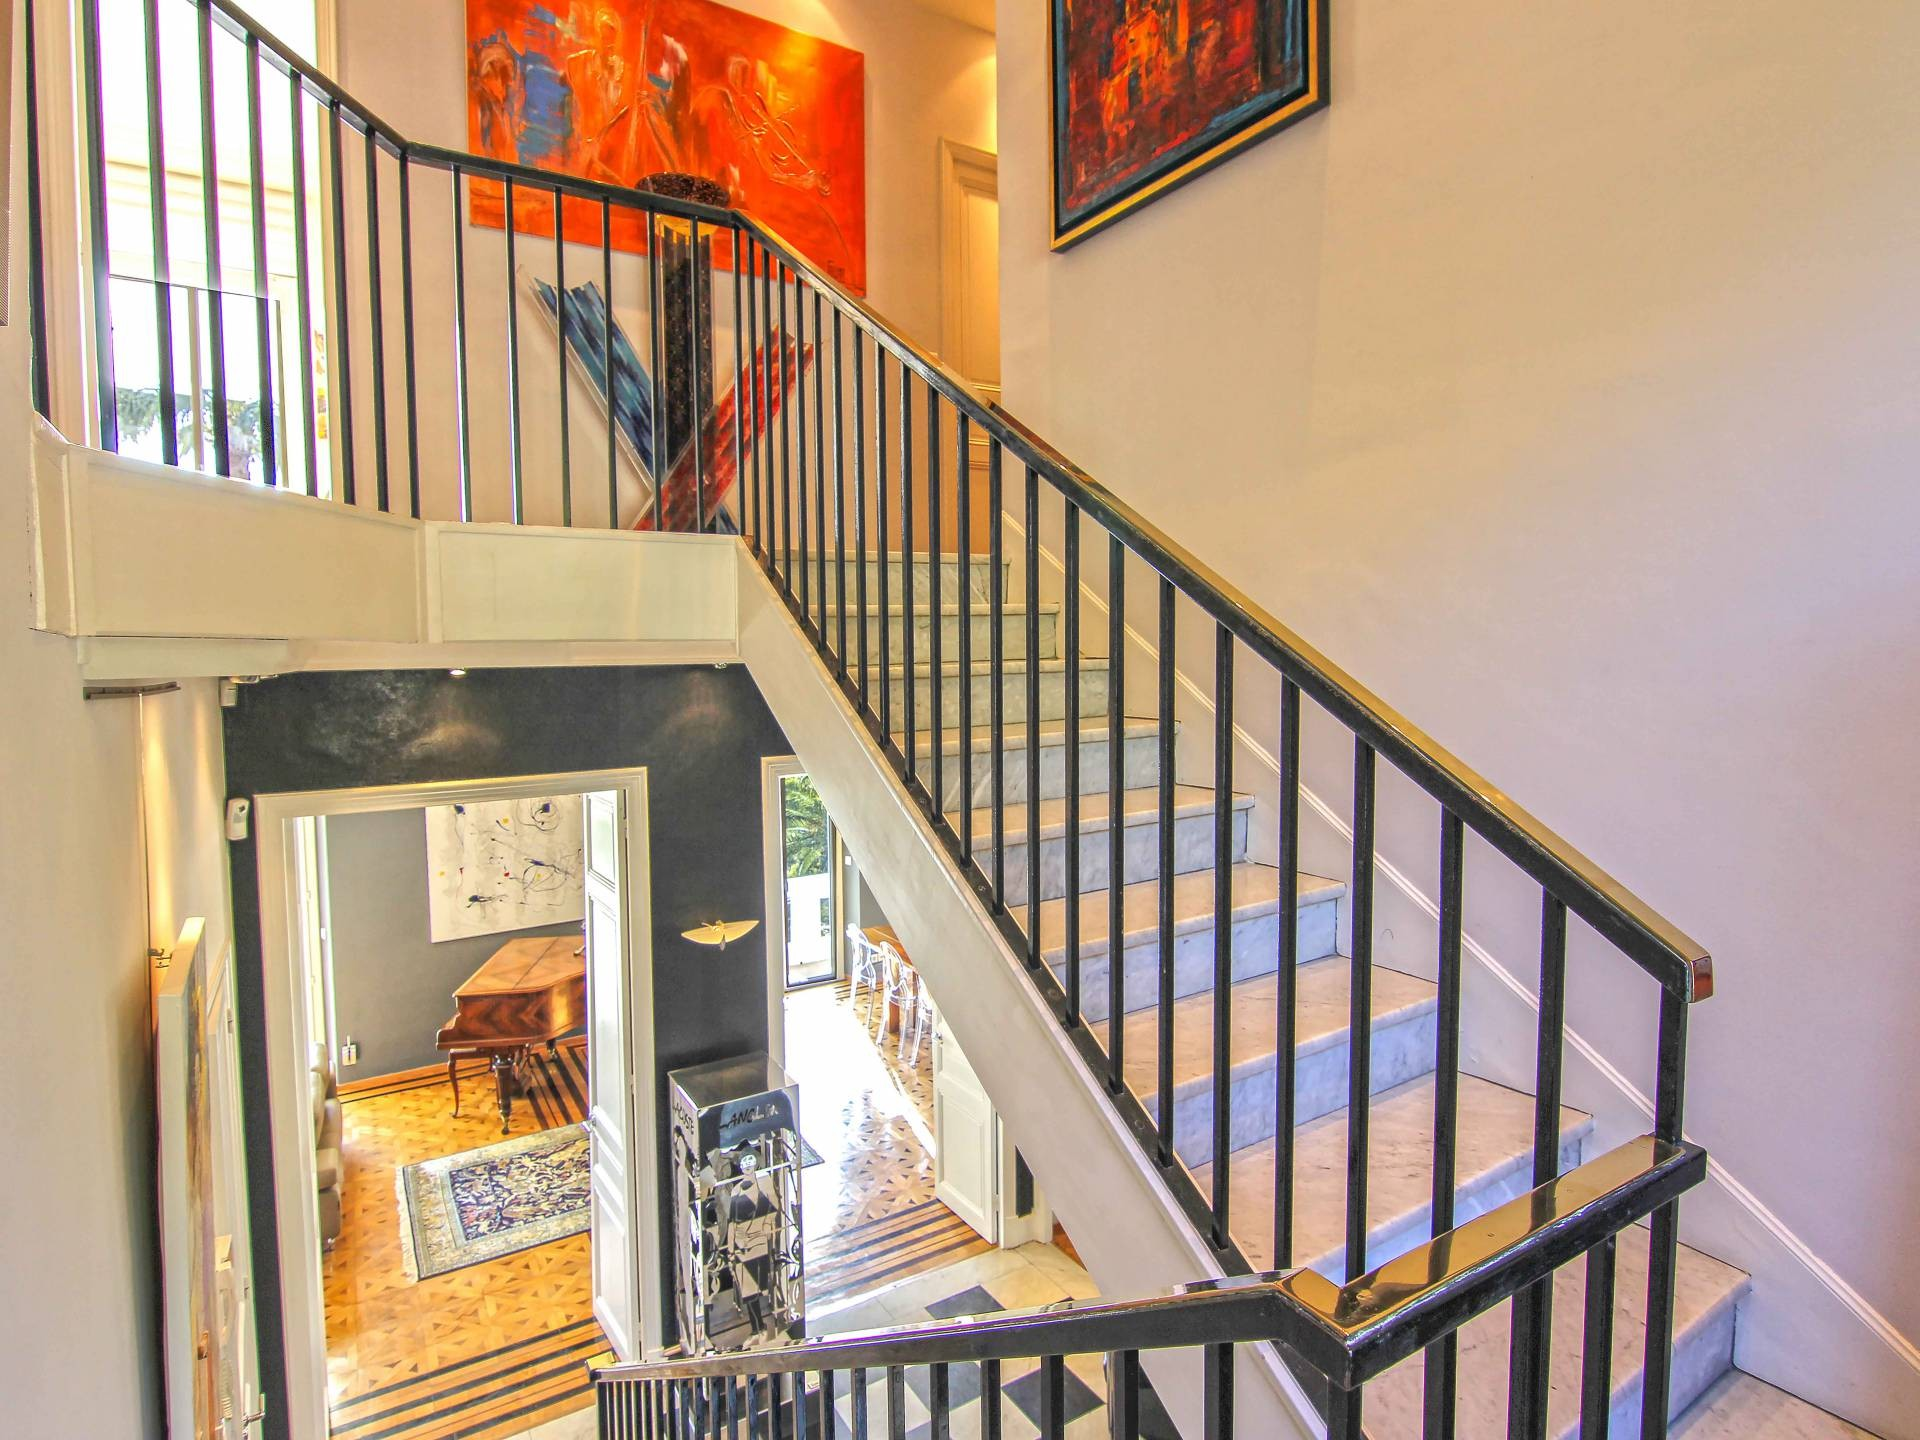 cote dazur singapore expat dating site Property for sale in côte d'azur, france from savills,  by continuing to visit our site you agree to our use of cookies more info yes,  dating from 1860.